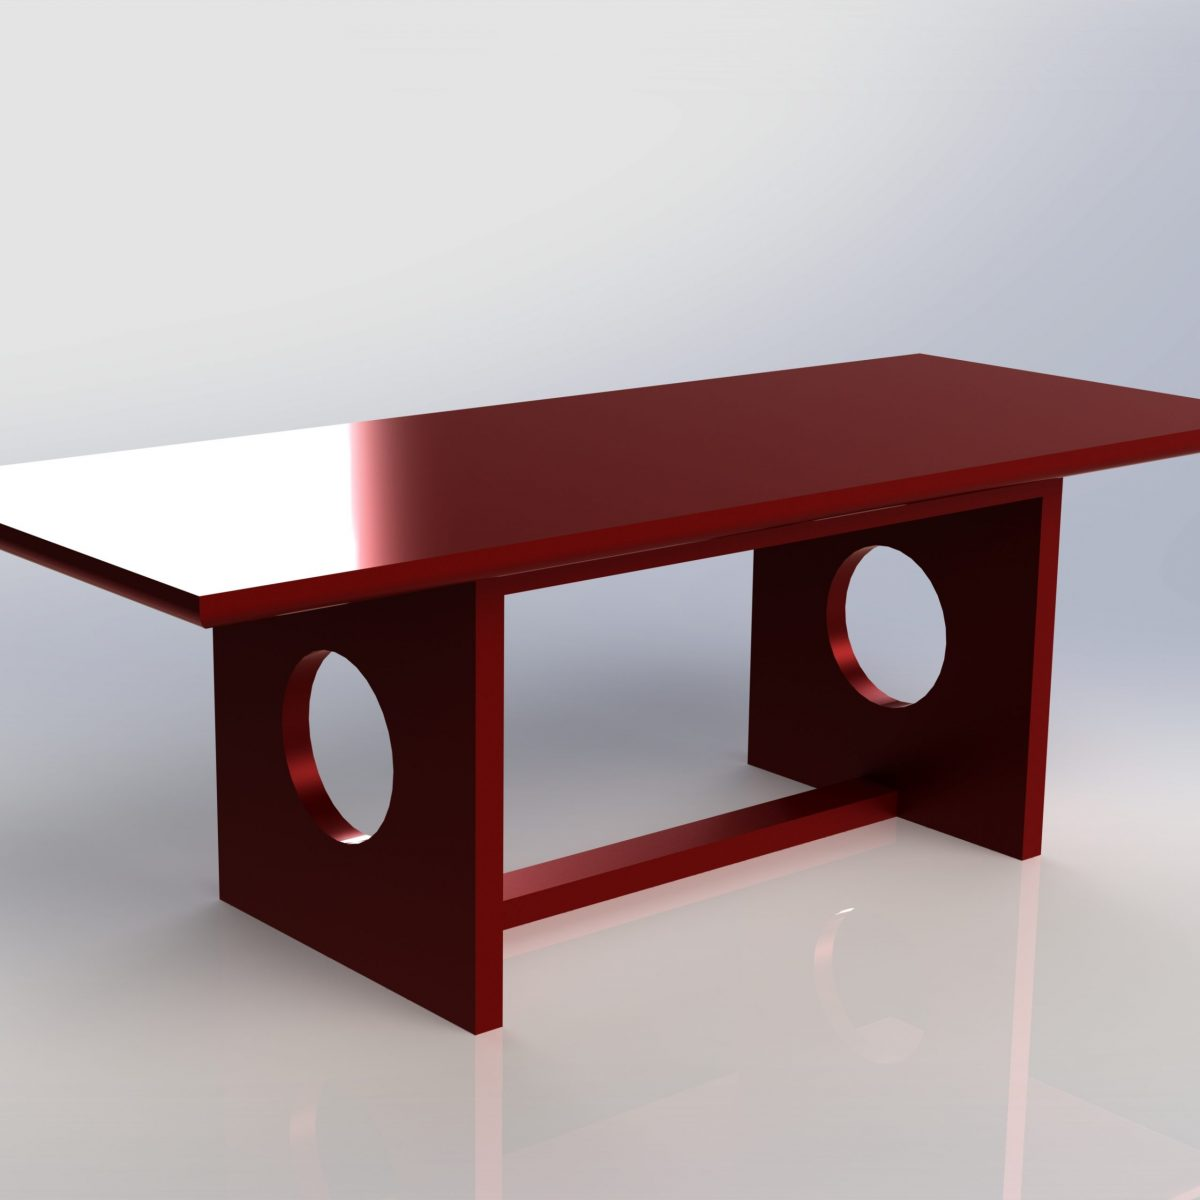 Bespoke Thorpe Dining Table Handcrafted in Suffolk